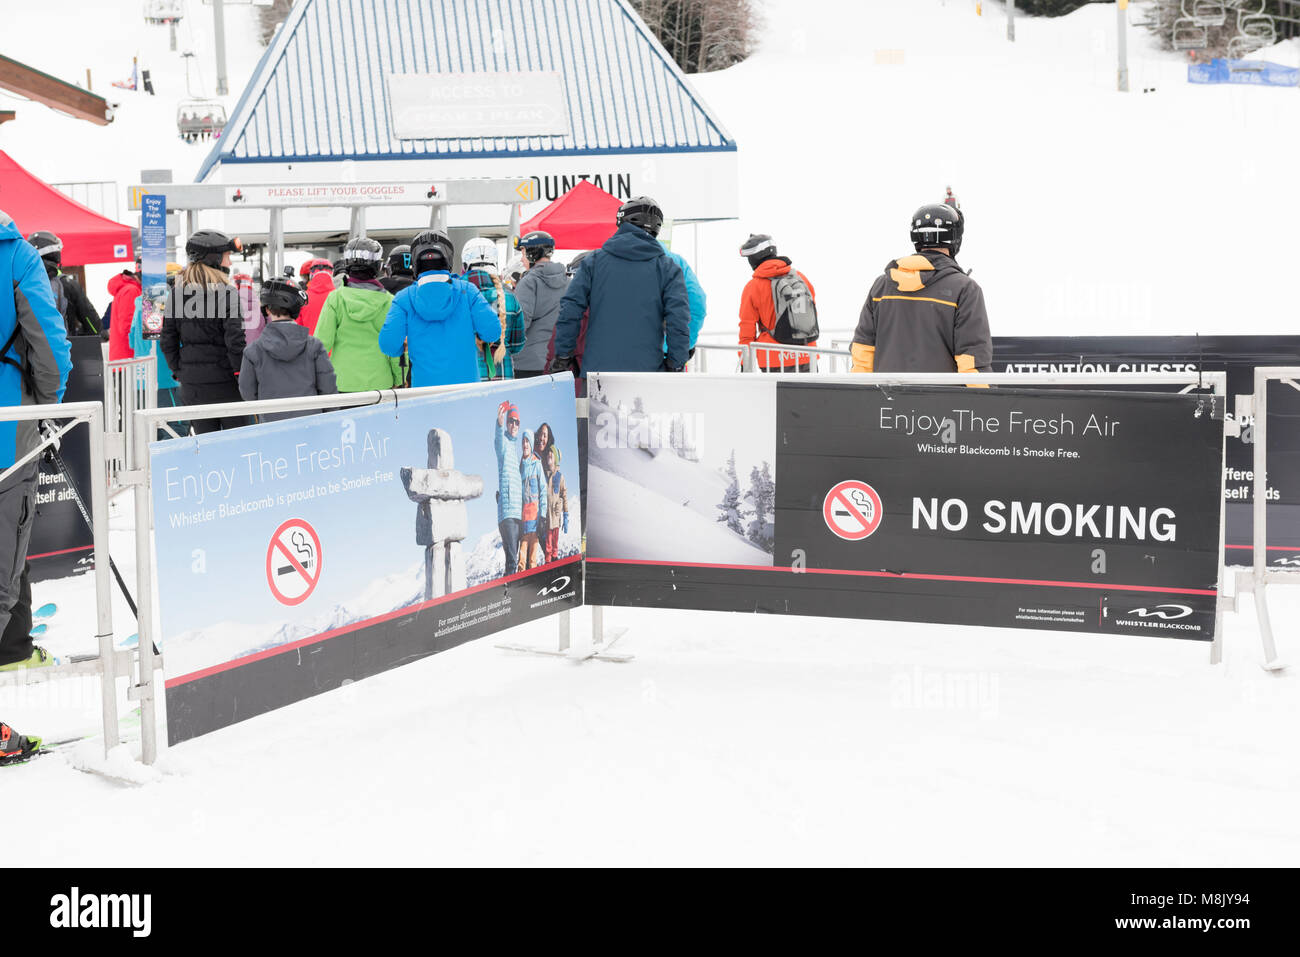 People in line for the chairlift at Whistler Blackcomb ski resort. Stock Photo